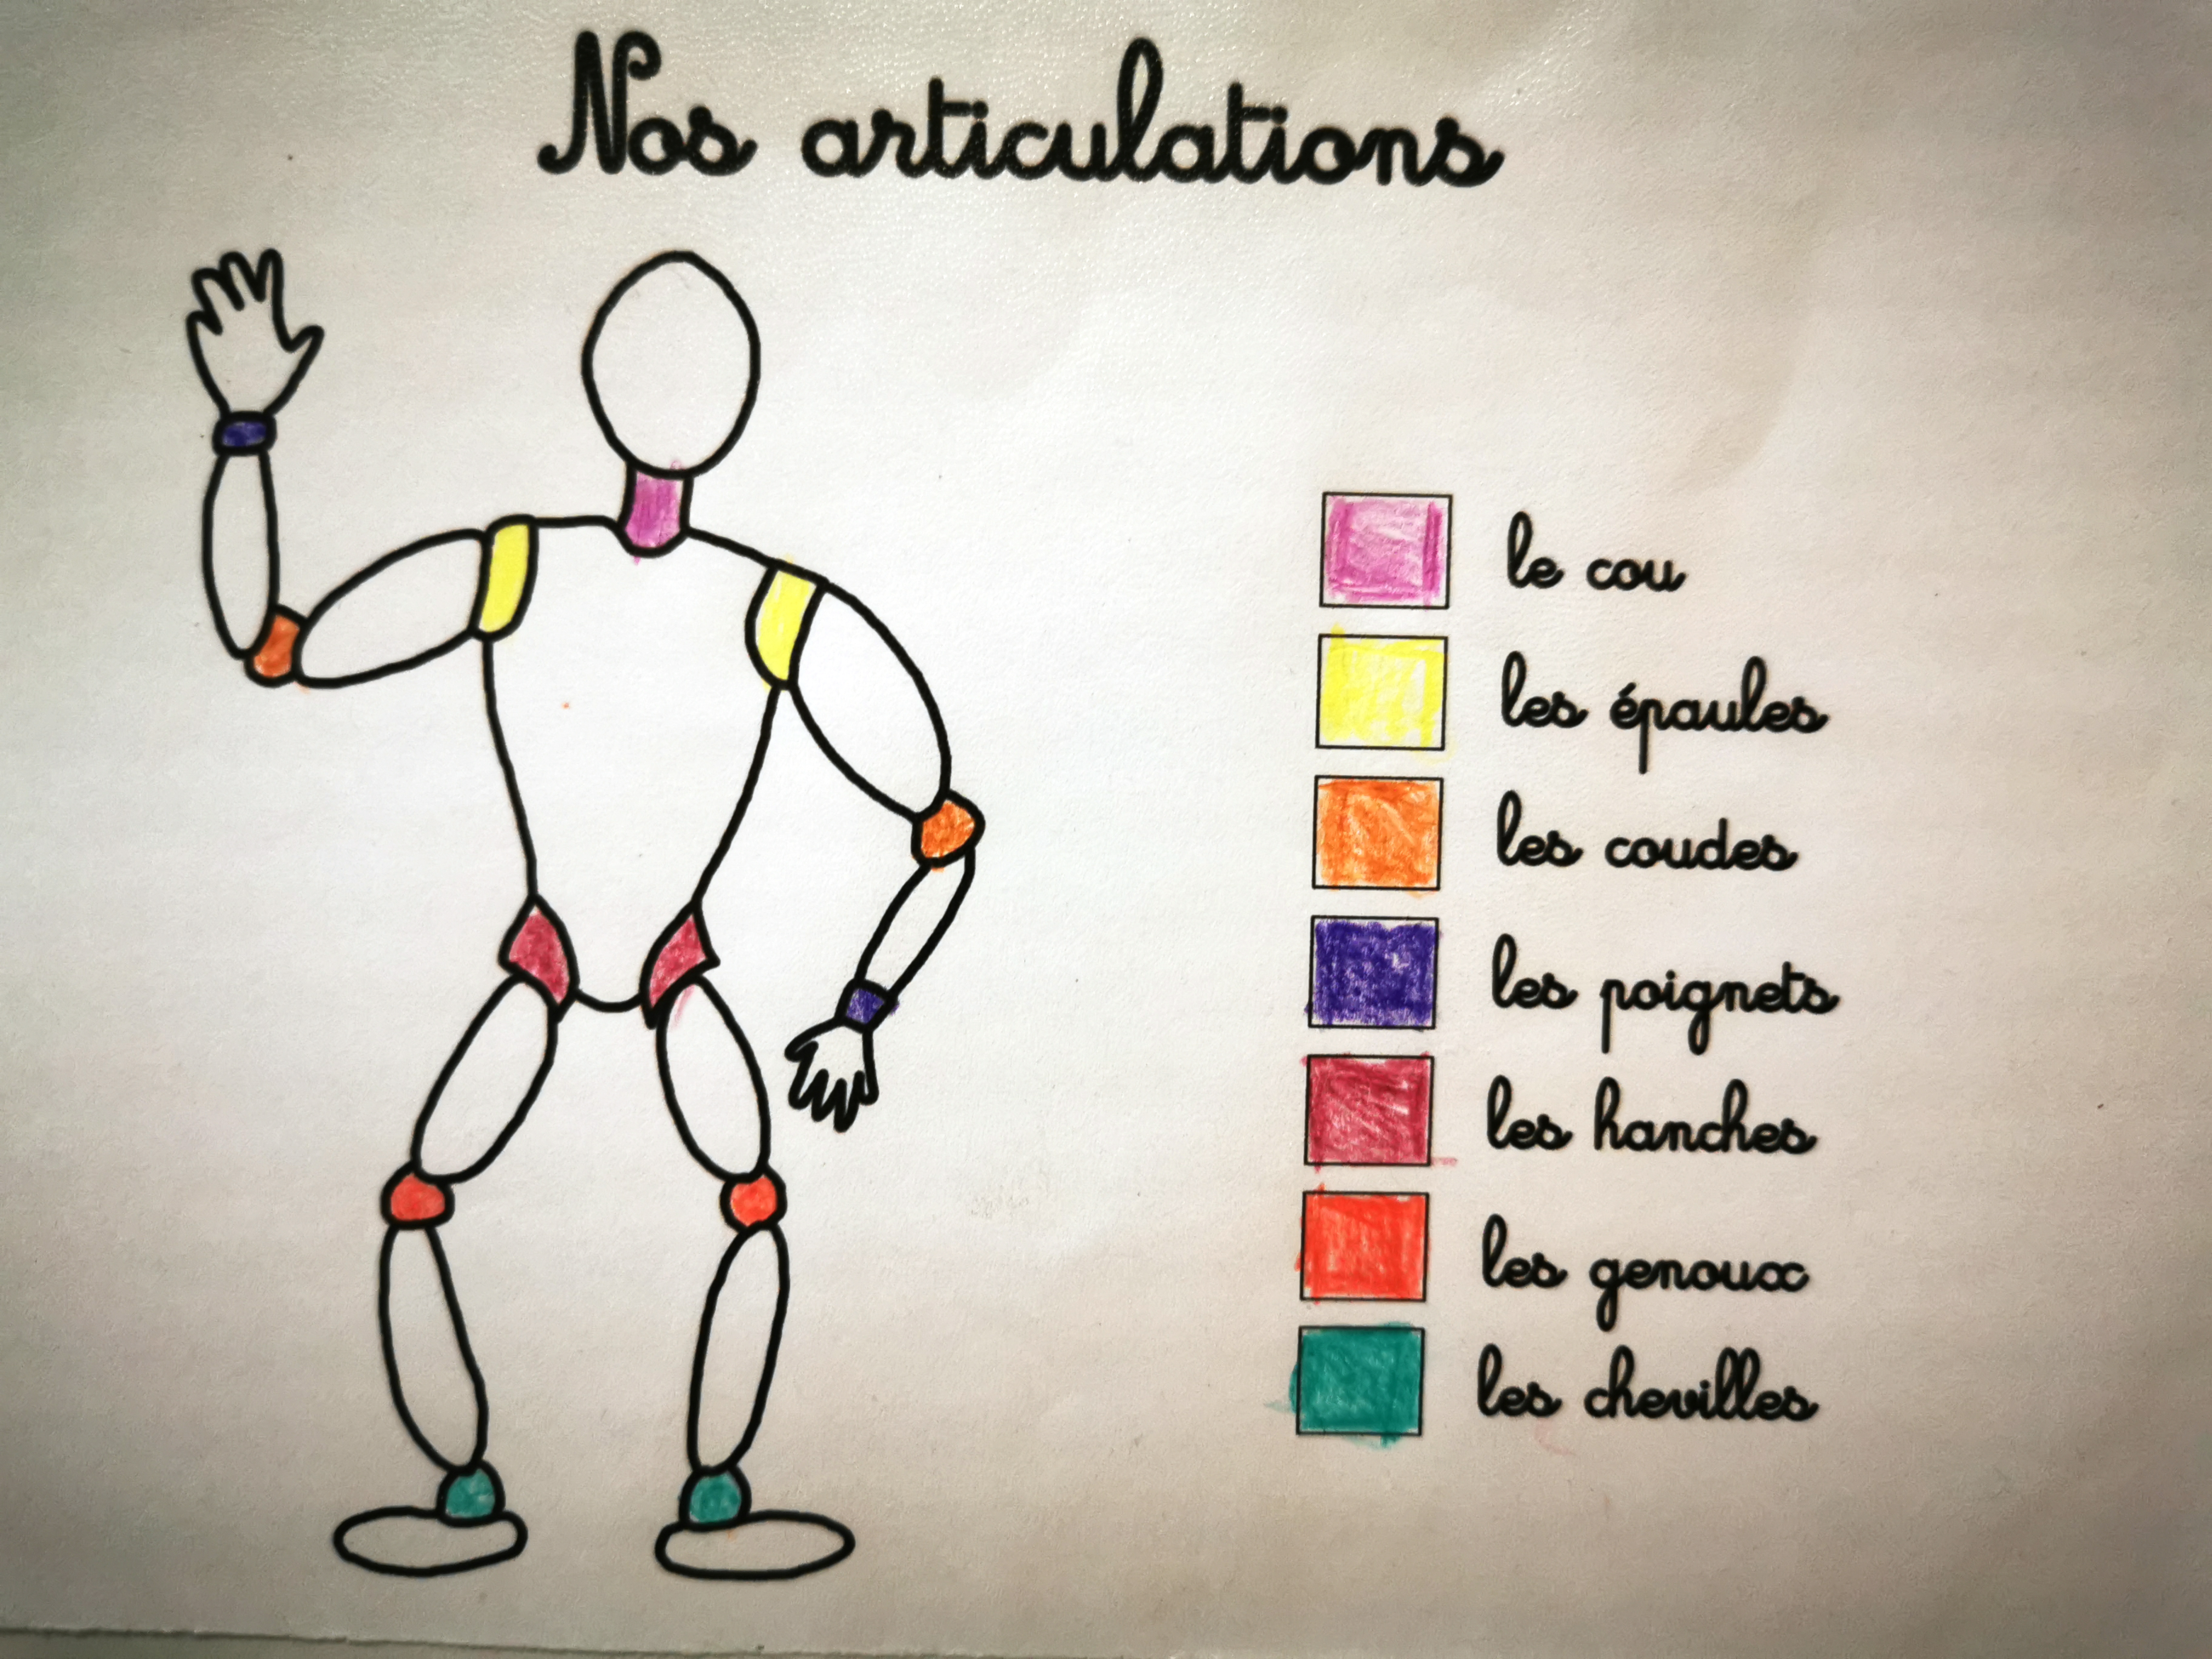 les articulations exercice